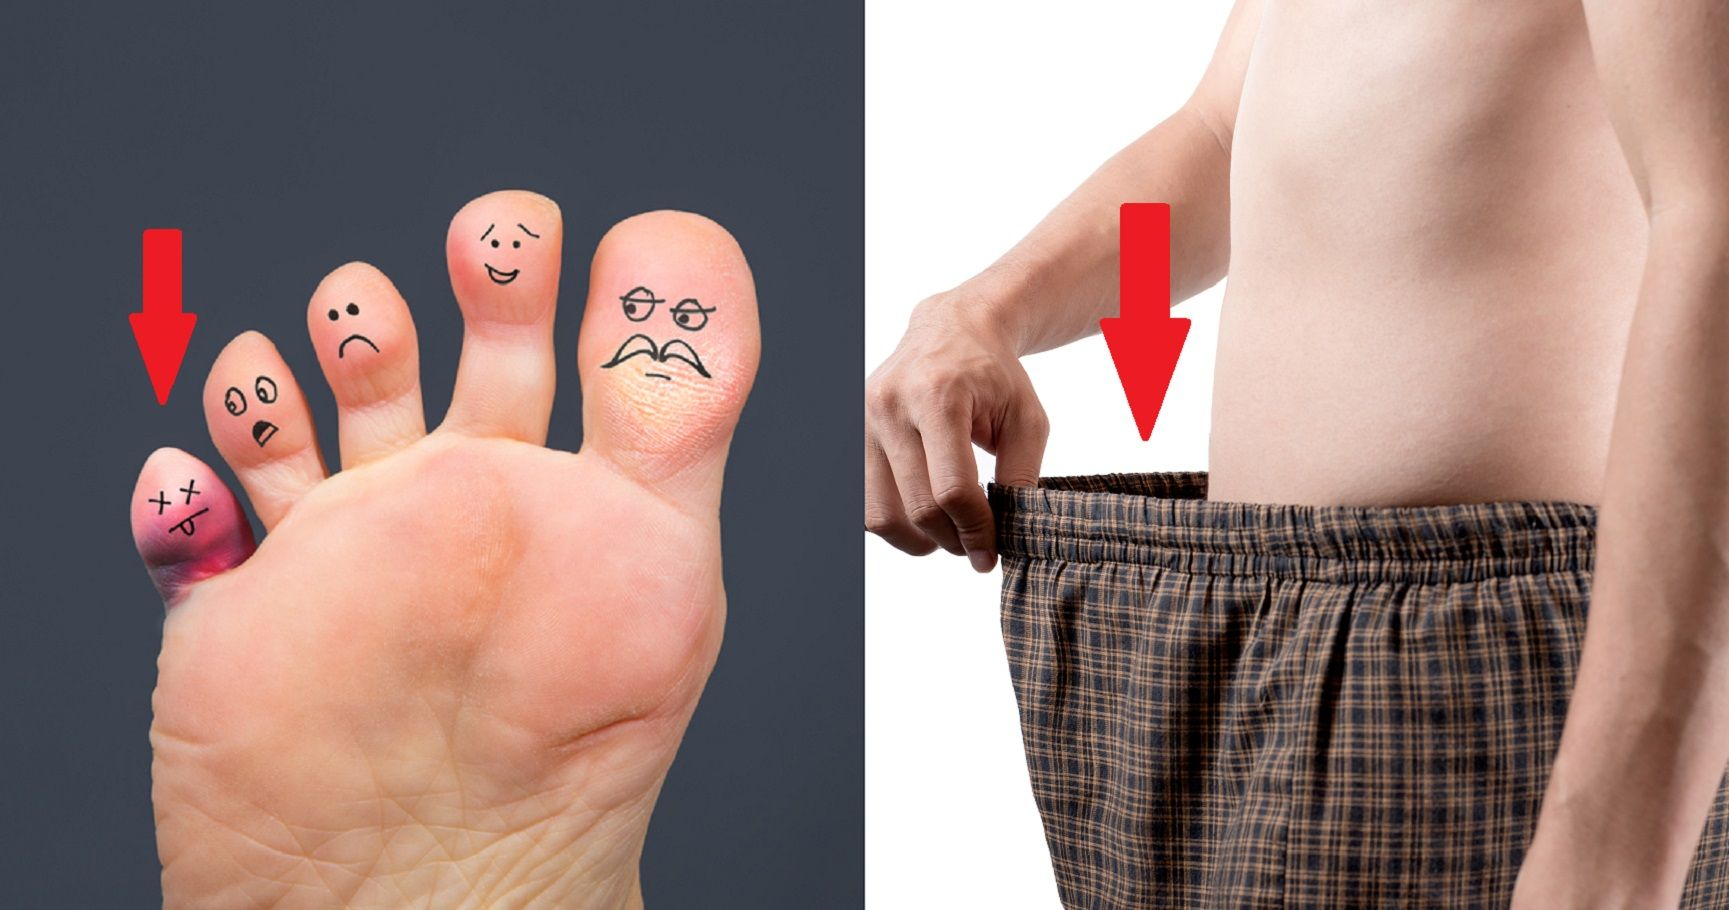 10 Human Body Parts That Have Absolutely No Use